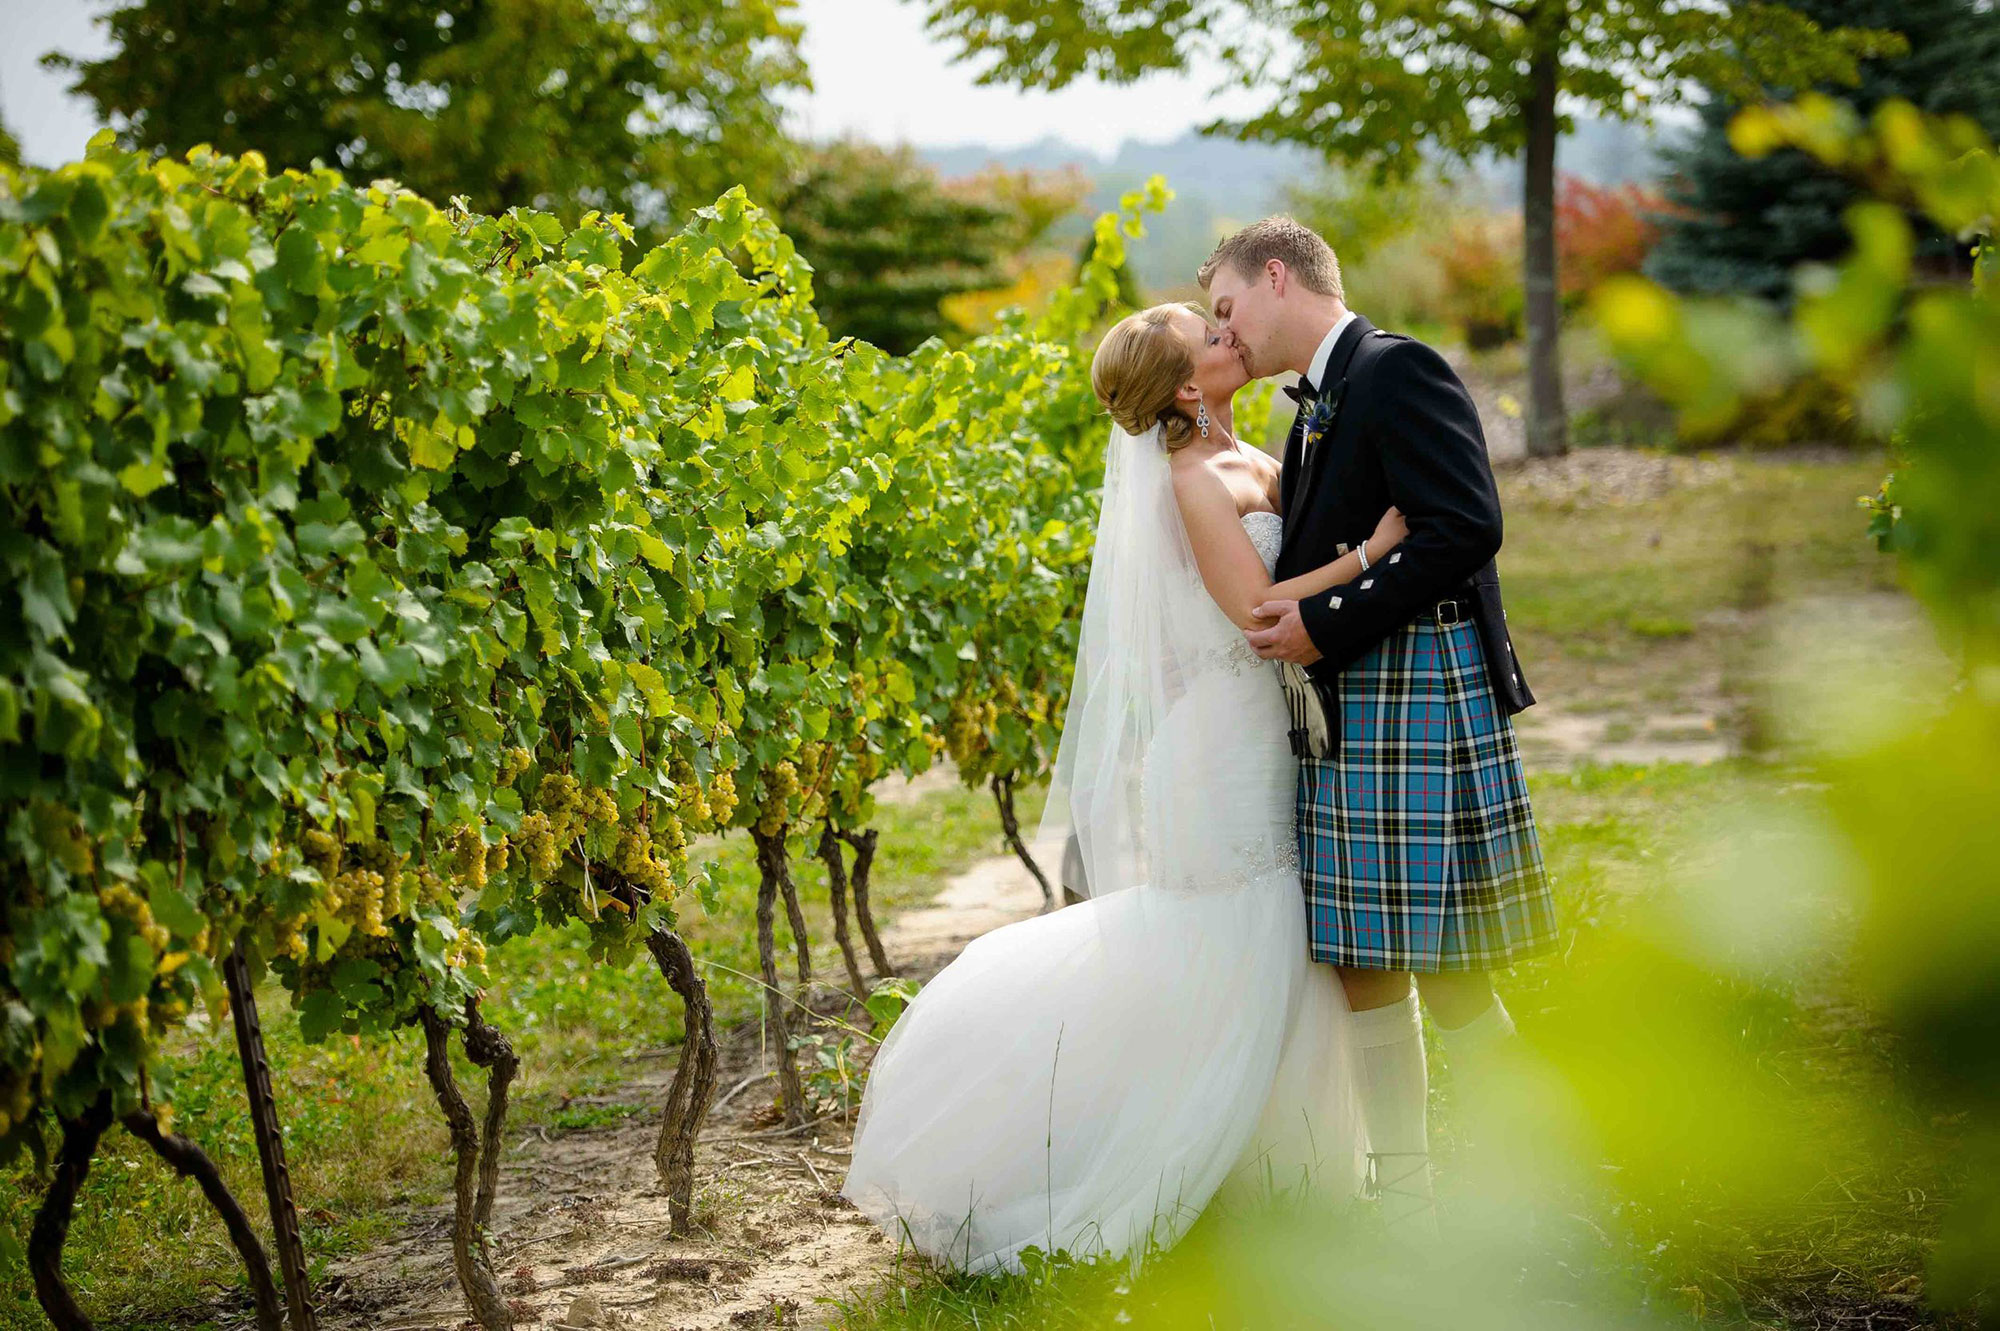 Rockway-Vineyards-Vineyard-Bride-Photo-By-Brian-Caporicci-022.jpg